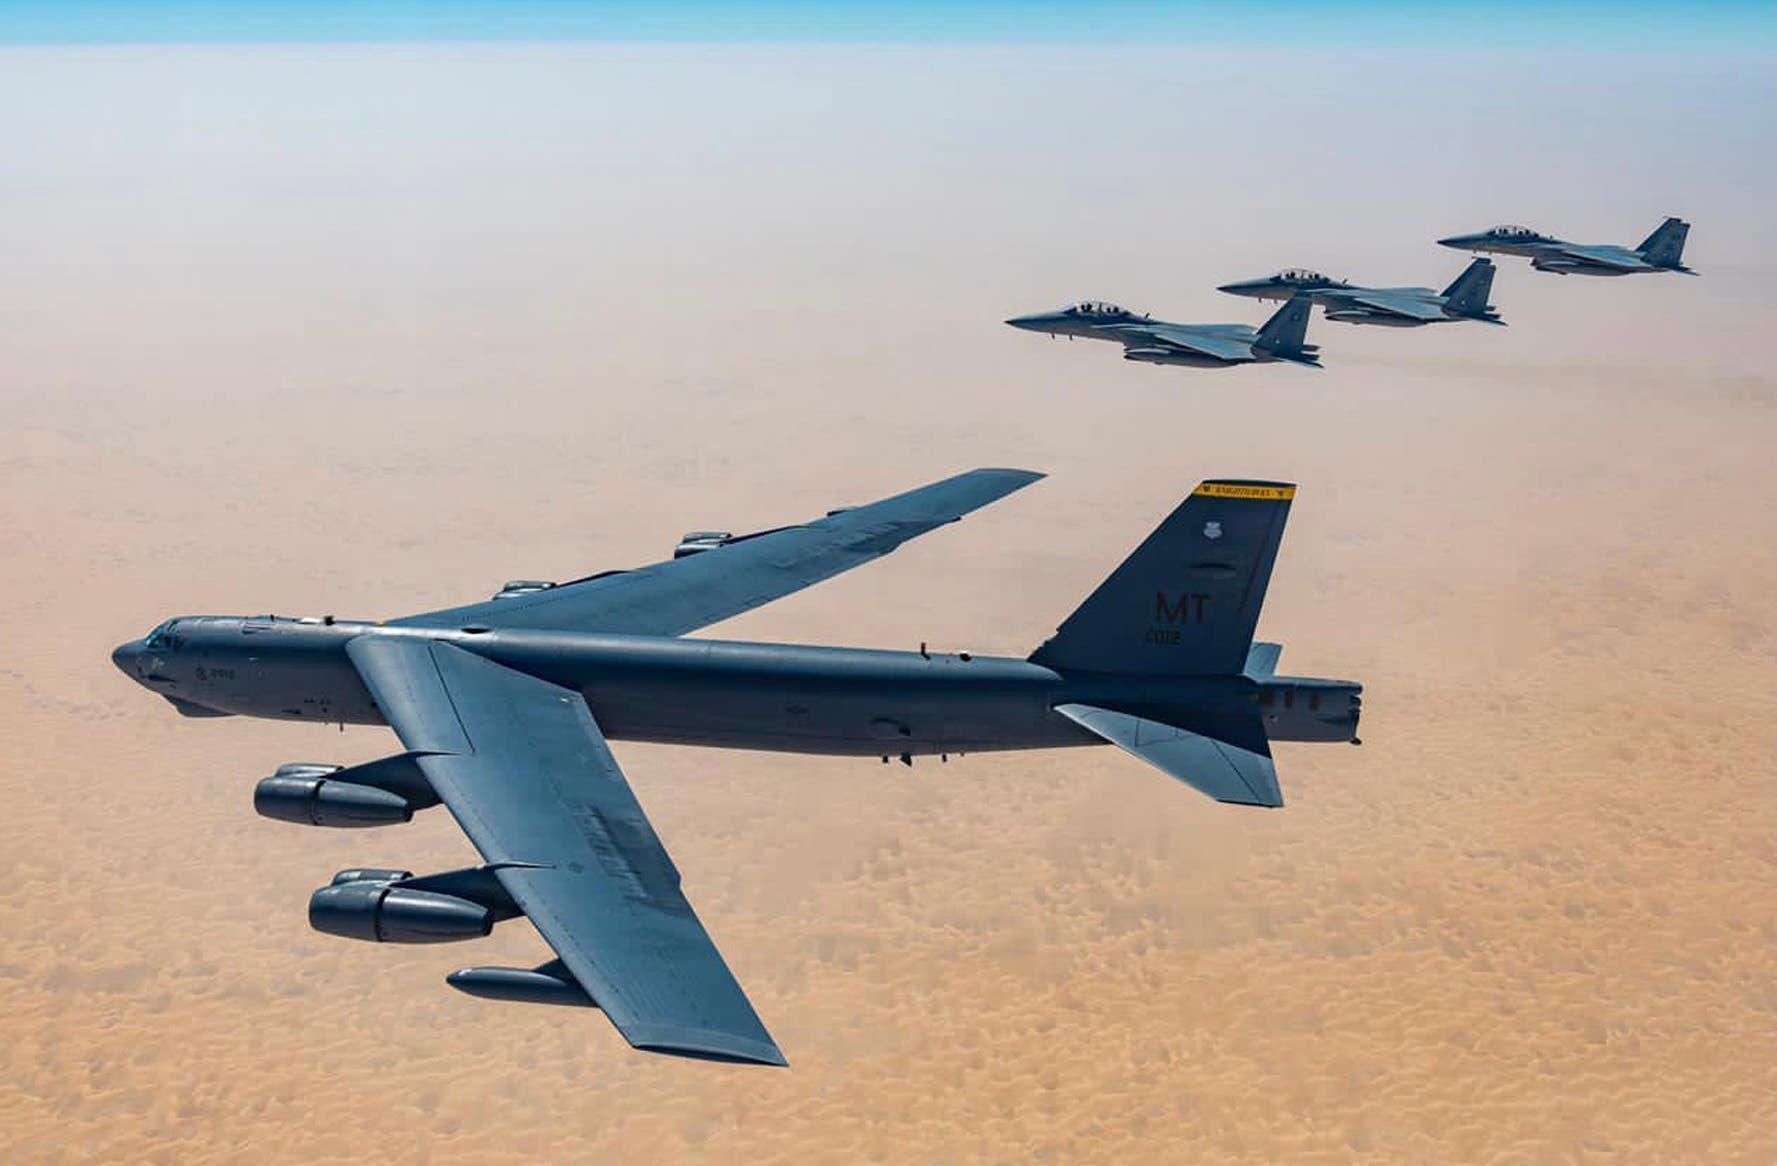 Joint exercises between the Saudi fighters and the two American B-52 bombers